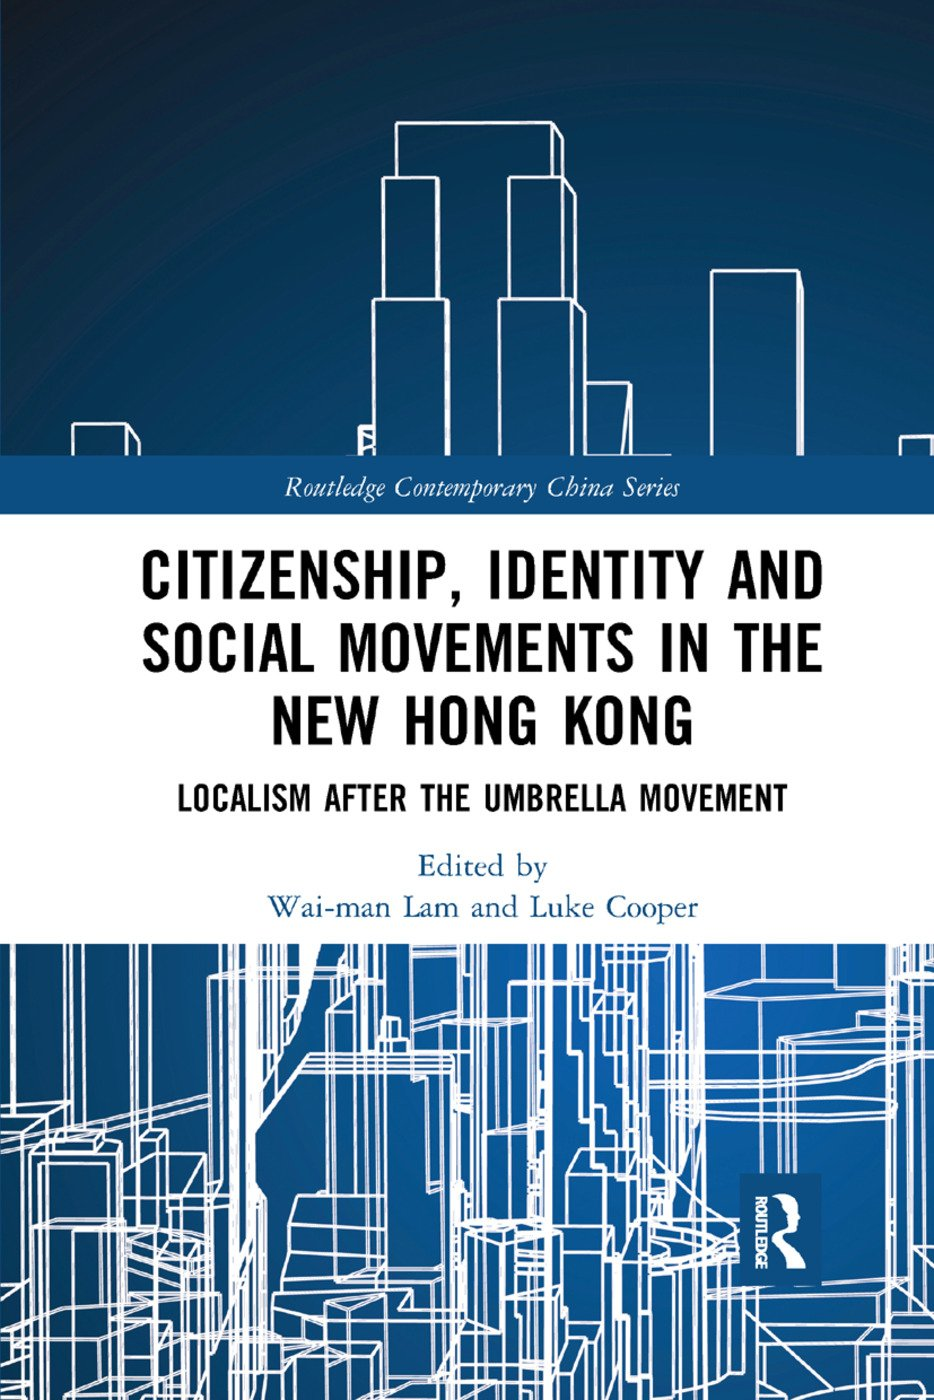 Citizenship, Identity and Social Movements in the New Hong Kong